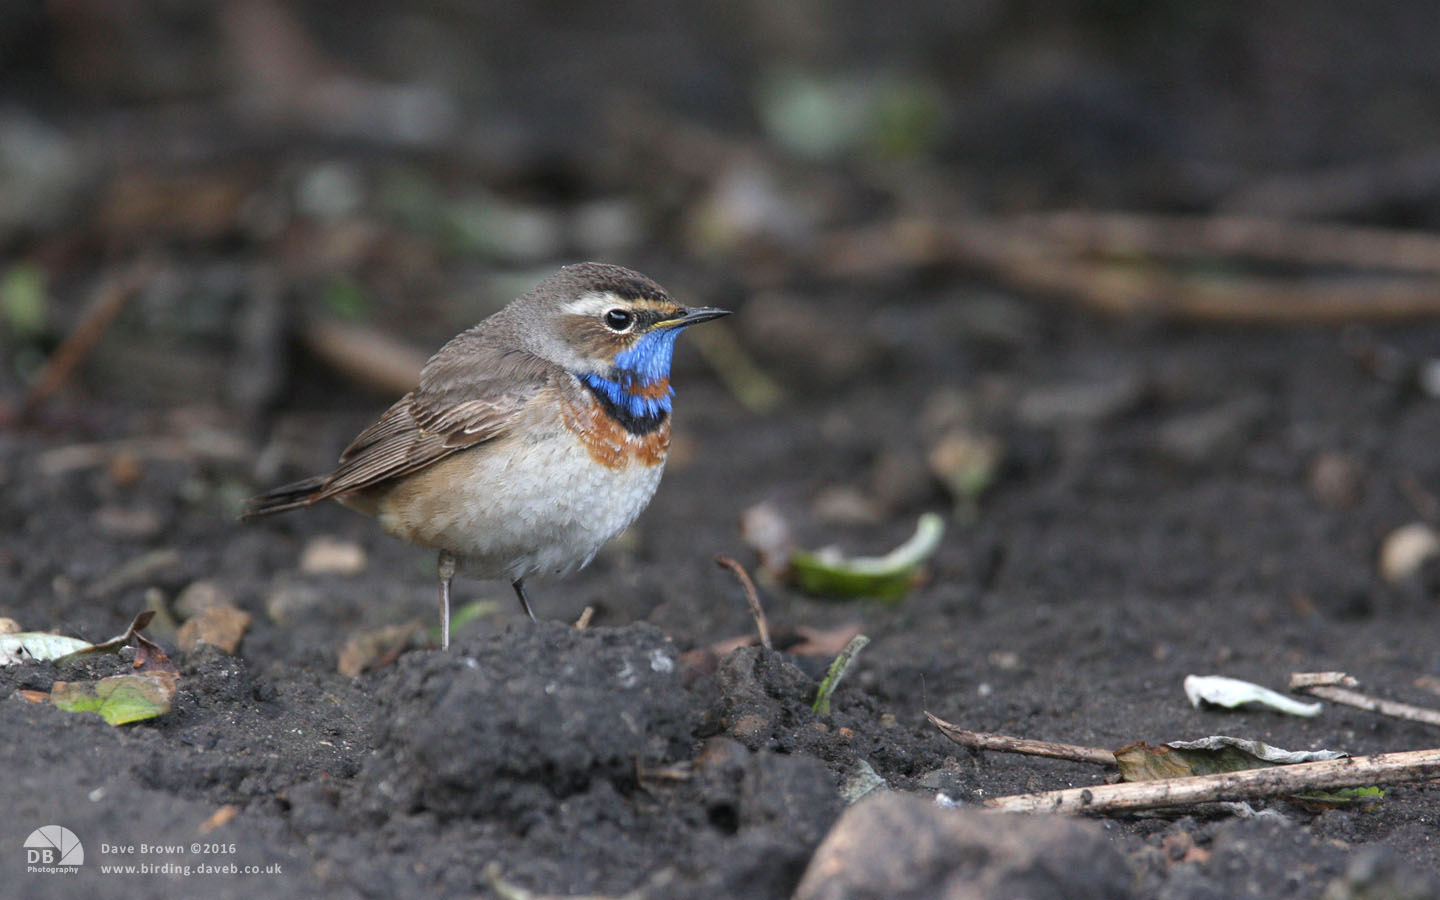 Bluethroat at Hartlepool Headland, 11th May 2012